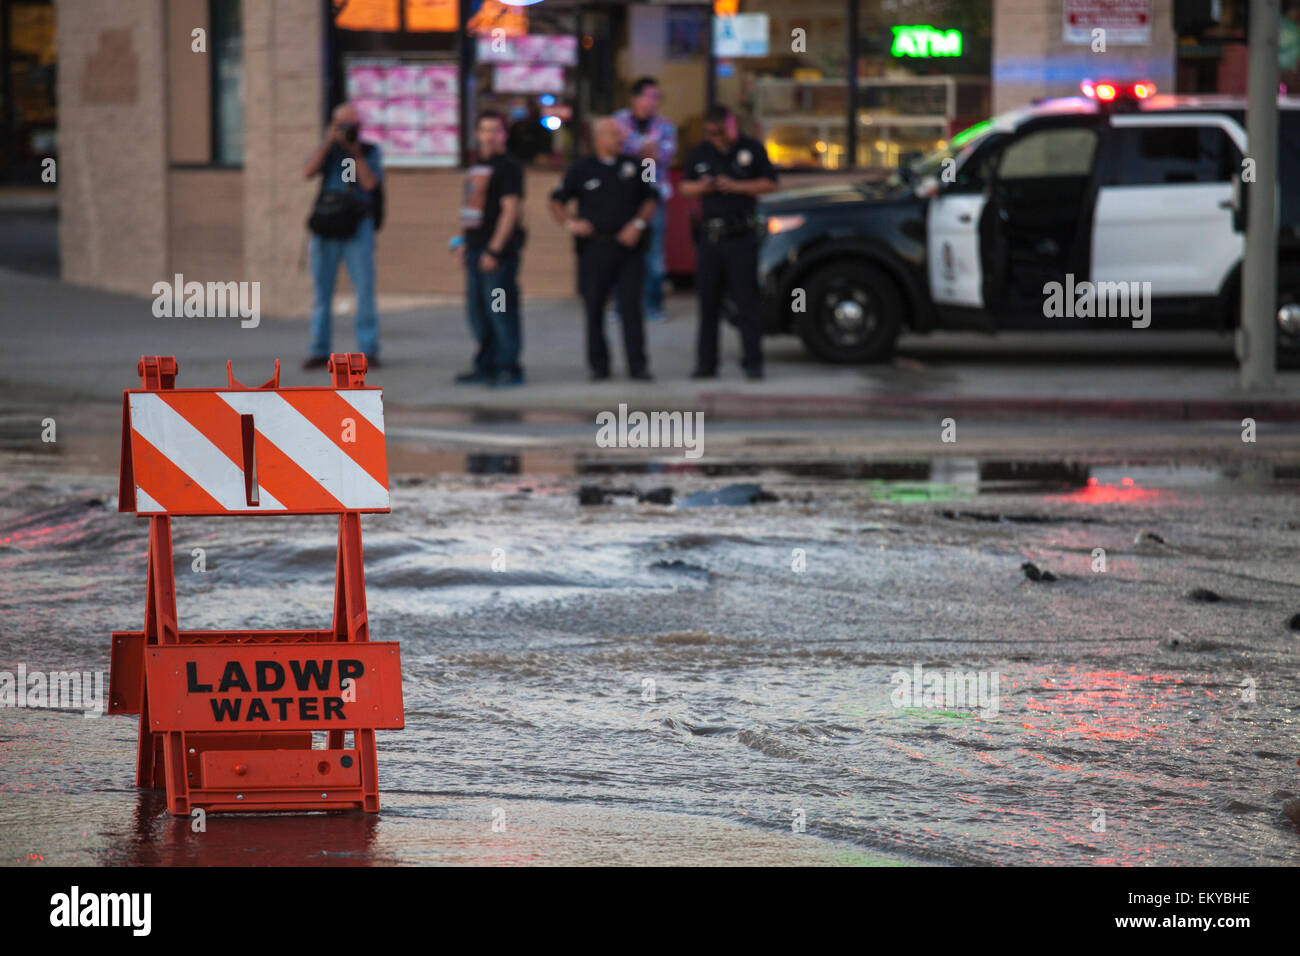 Water main break at Santa Monica Blvd. and HIghland in Hollywood on Oct 27, 2014. - Stock Image